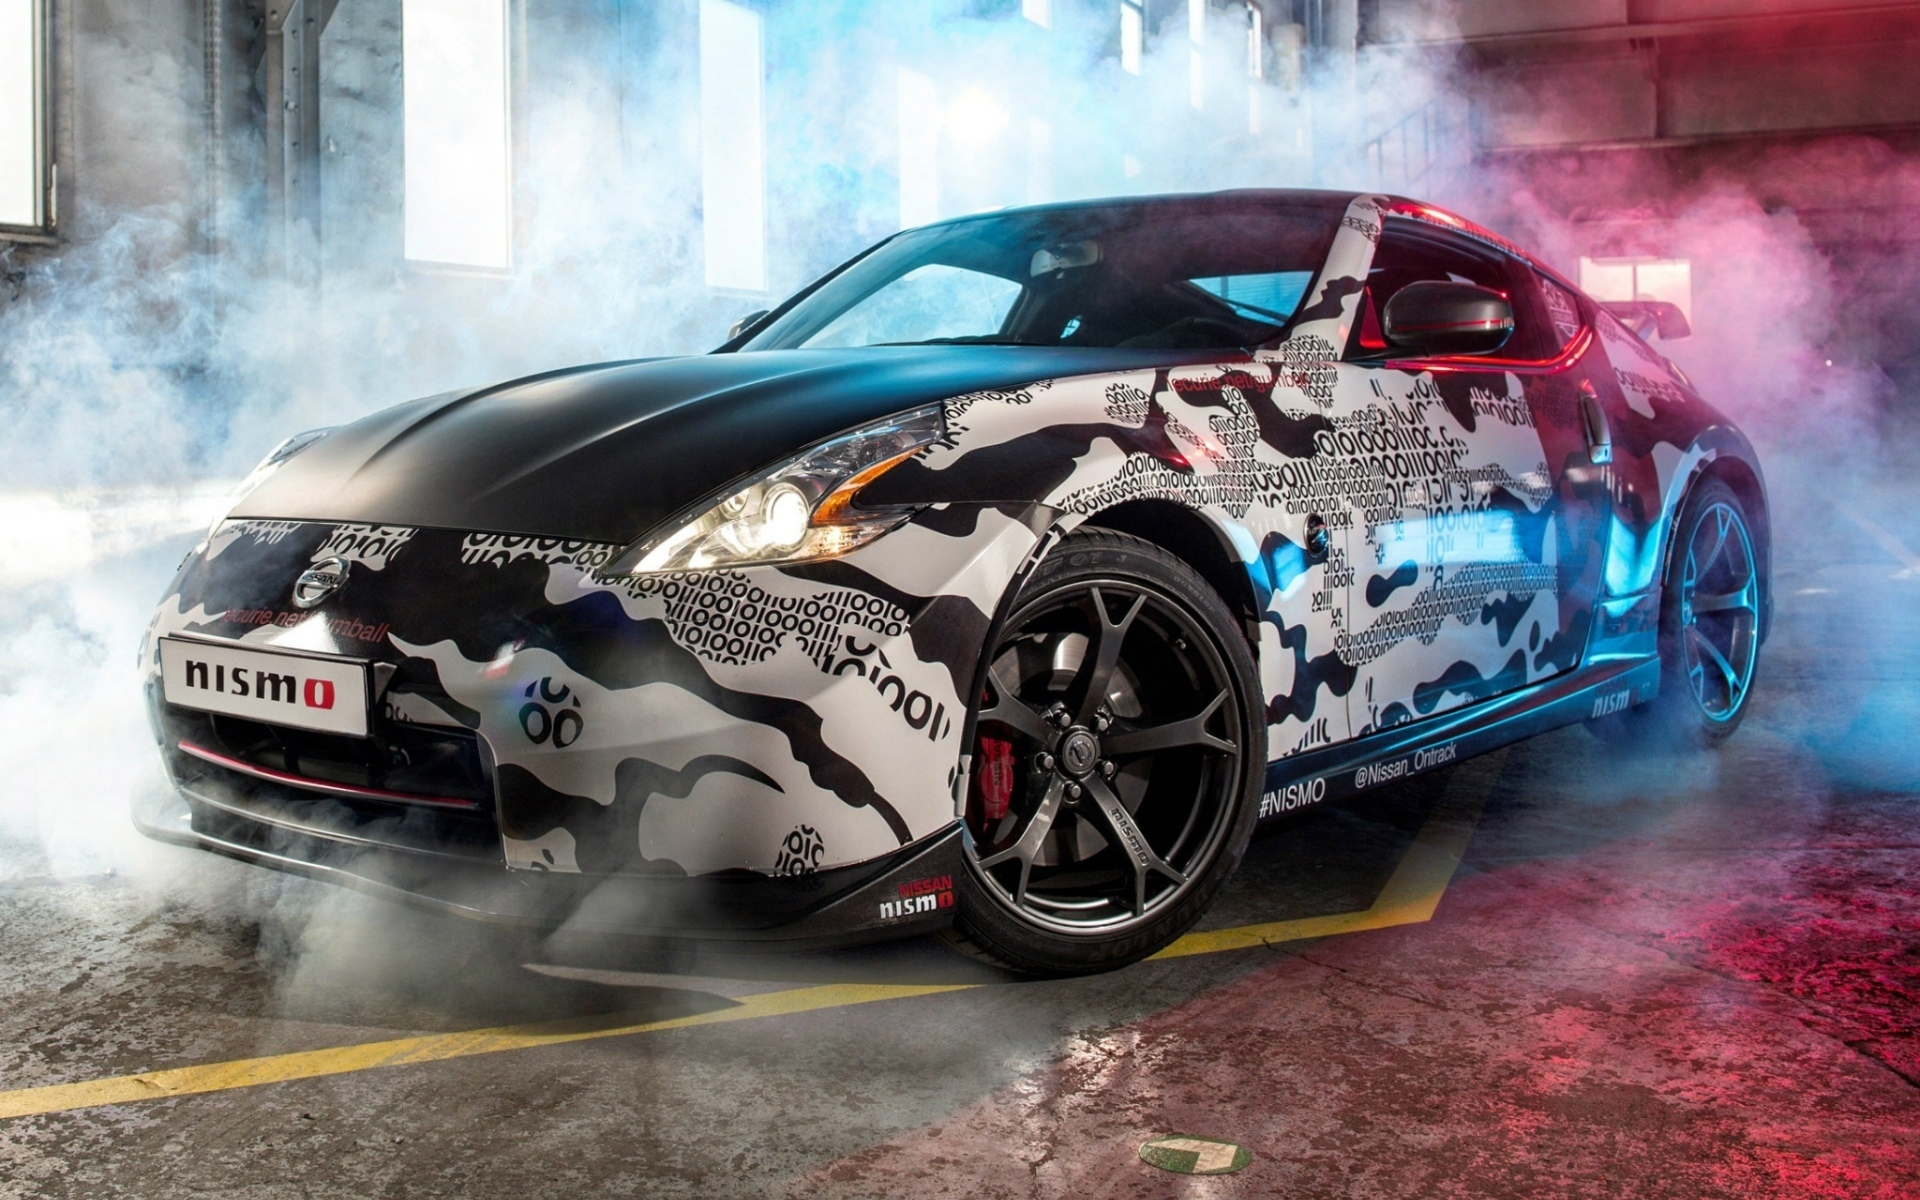 automotive tuning Automotive99 is an online magazine for anyone who passionate about automotive worlds, car, supercars, classic cars, motor/bike and auto news and awesome tuning.